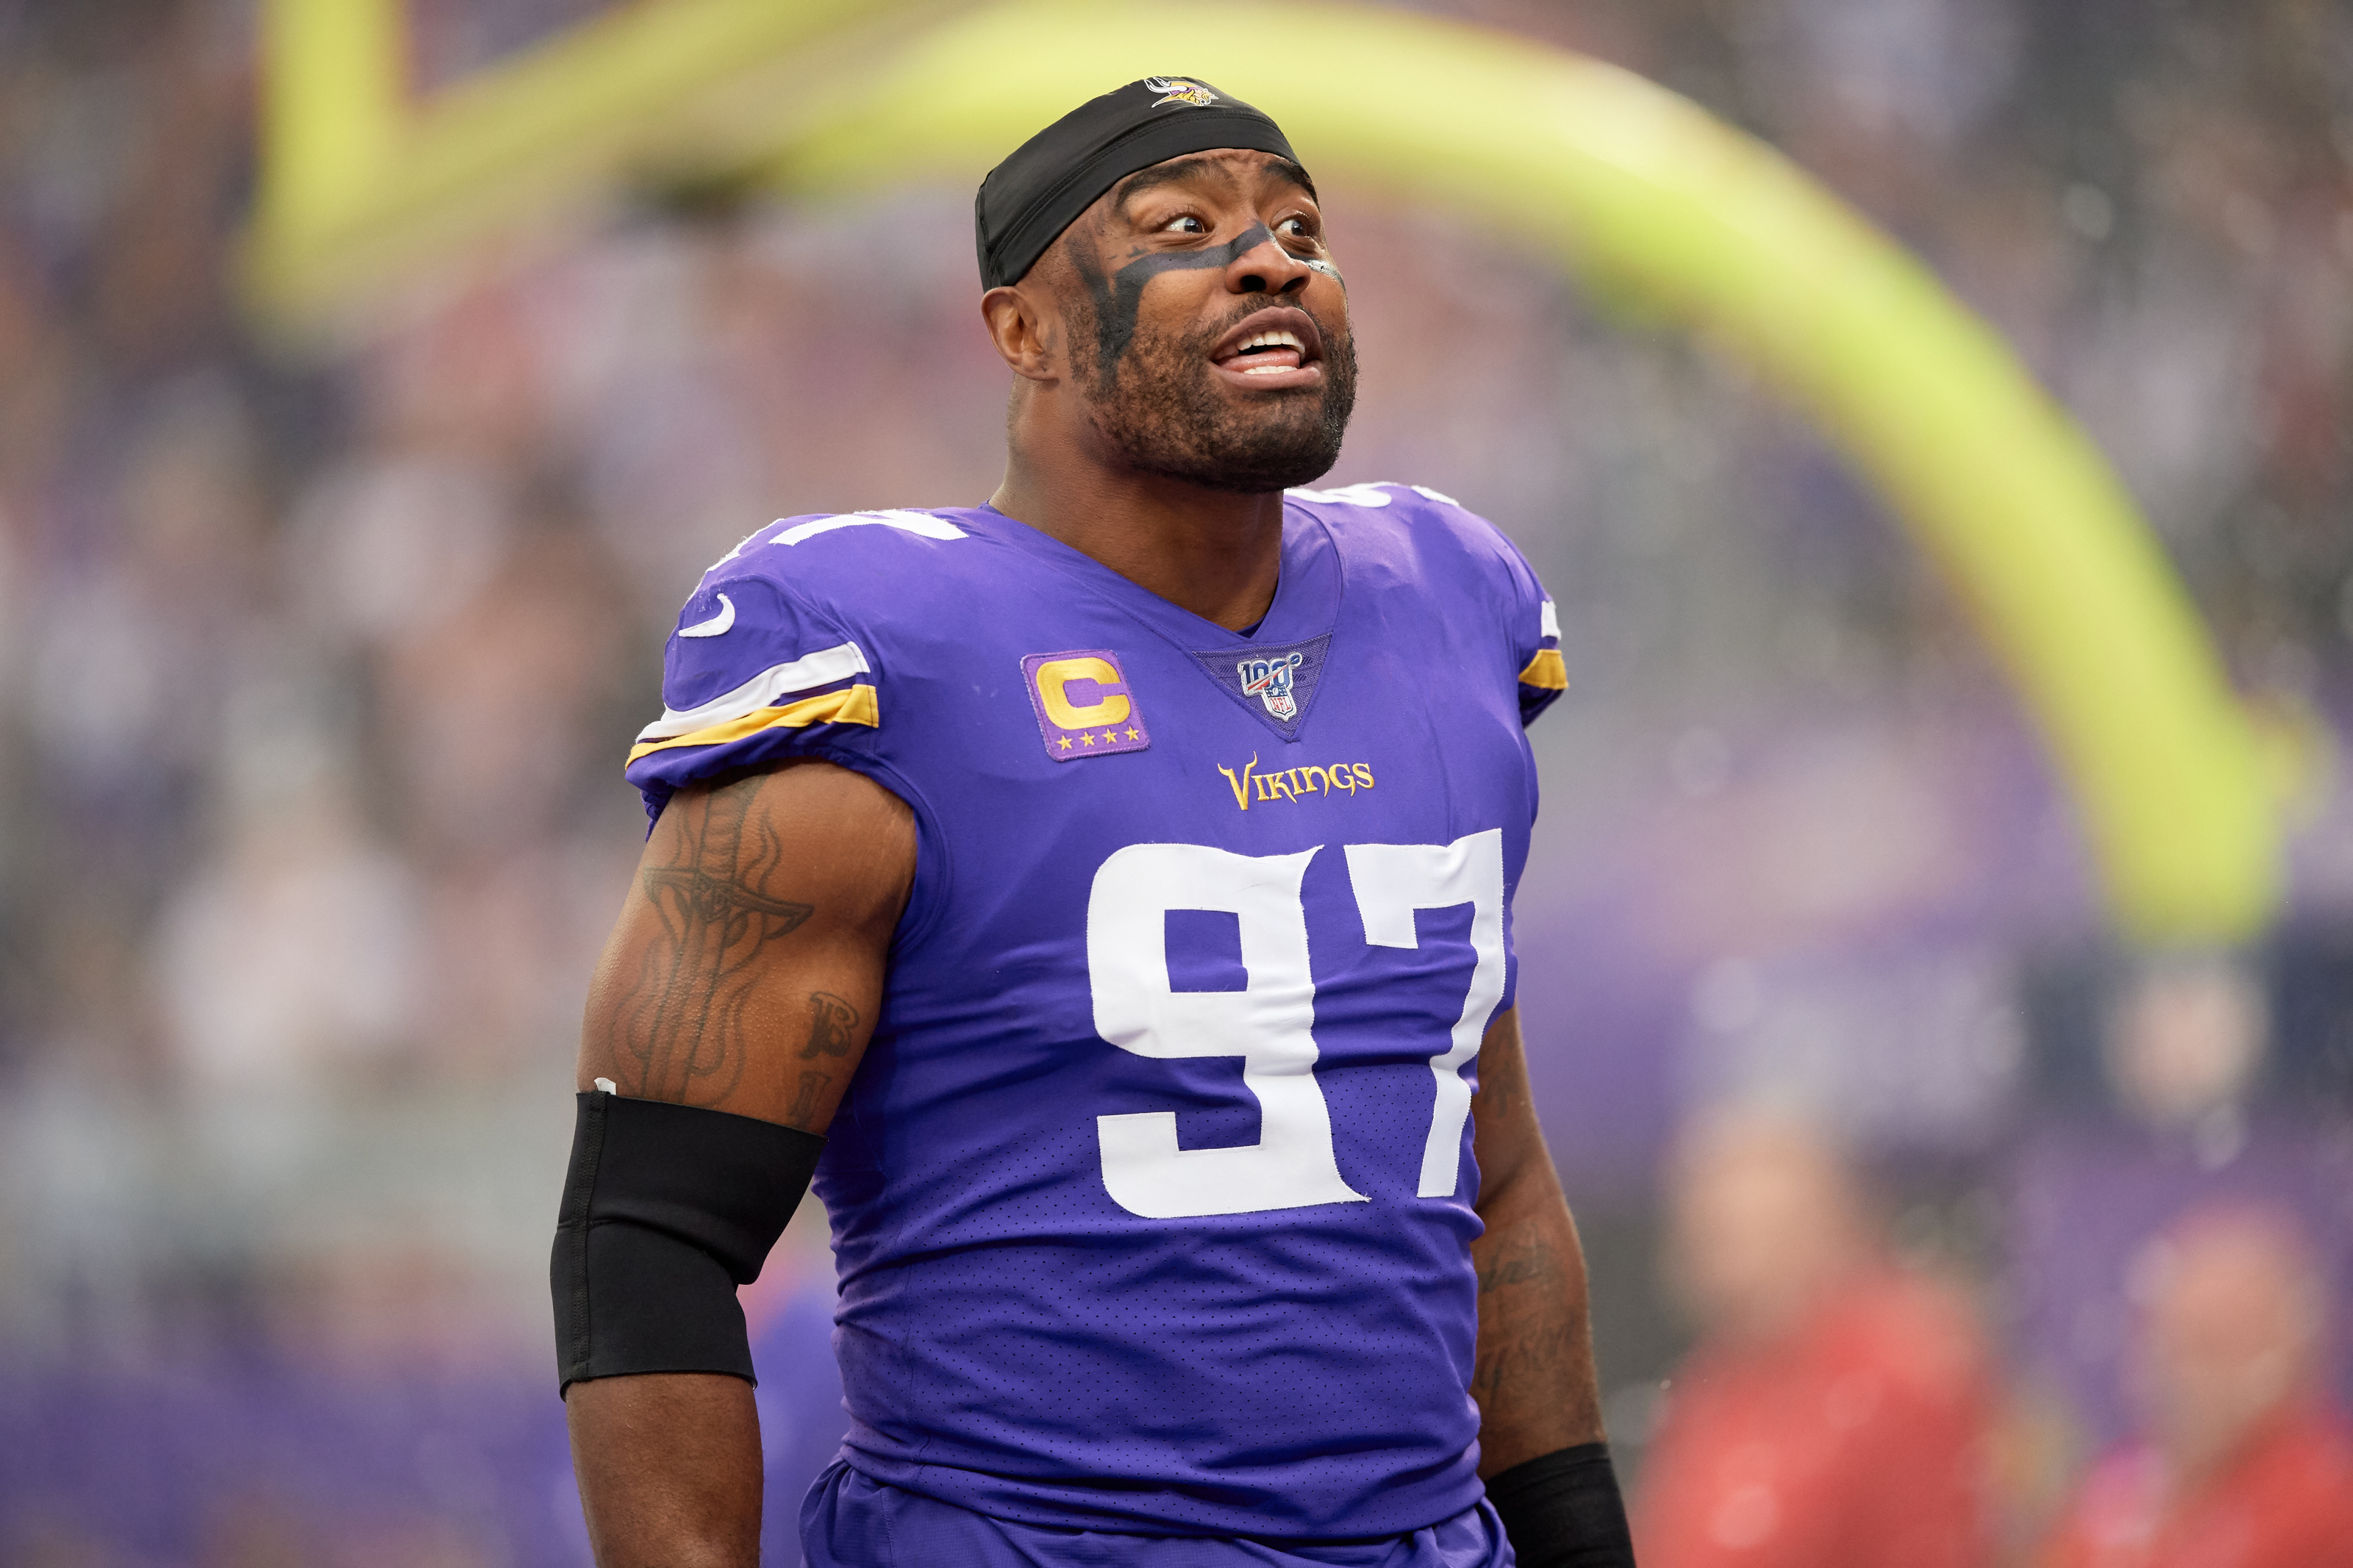 Hall of Famer doesn't think Everson Griffen makes Cowboys better